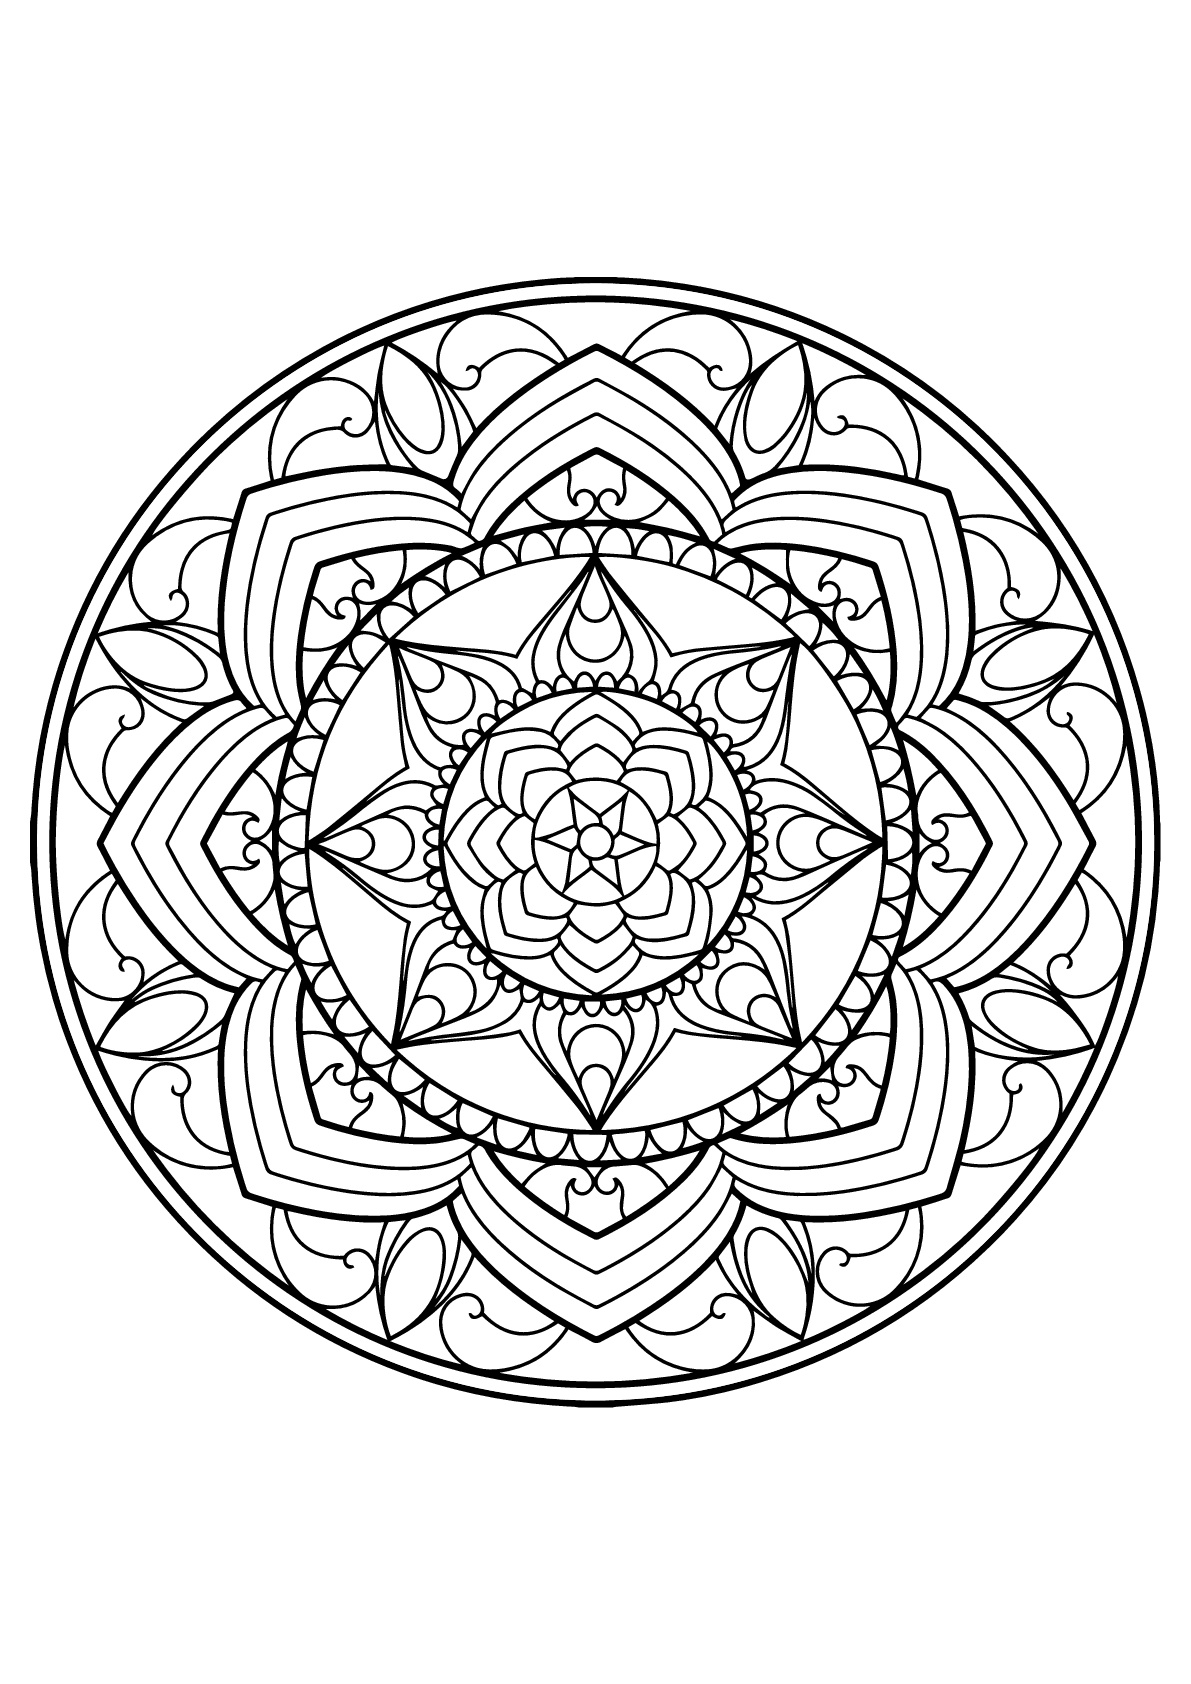 mandala pictures to color mandalas to color for kids mandalas kids coloring pages mandala color pictures to